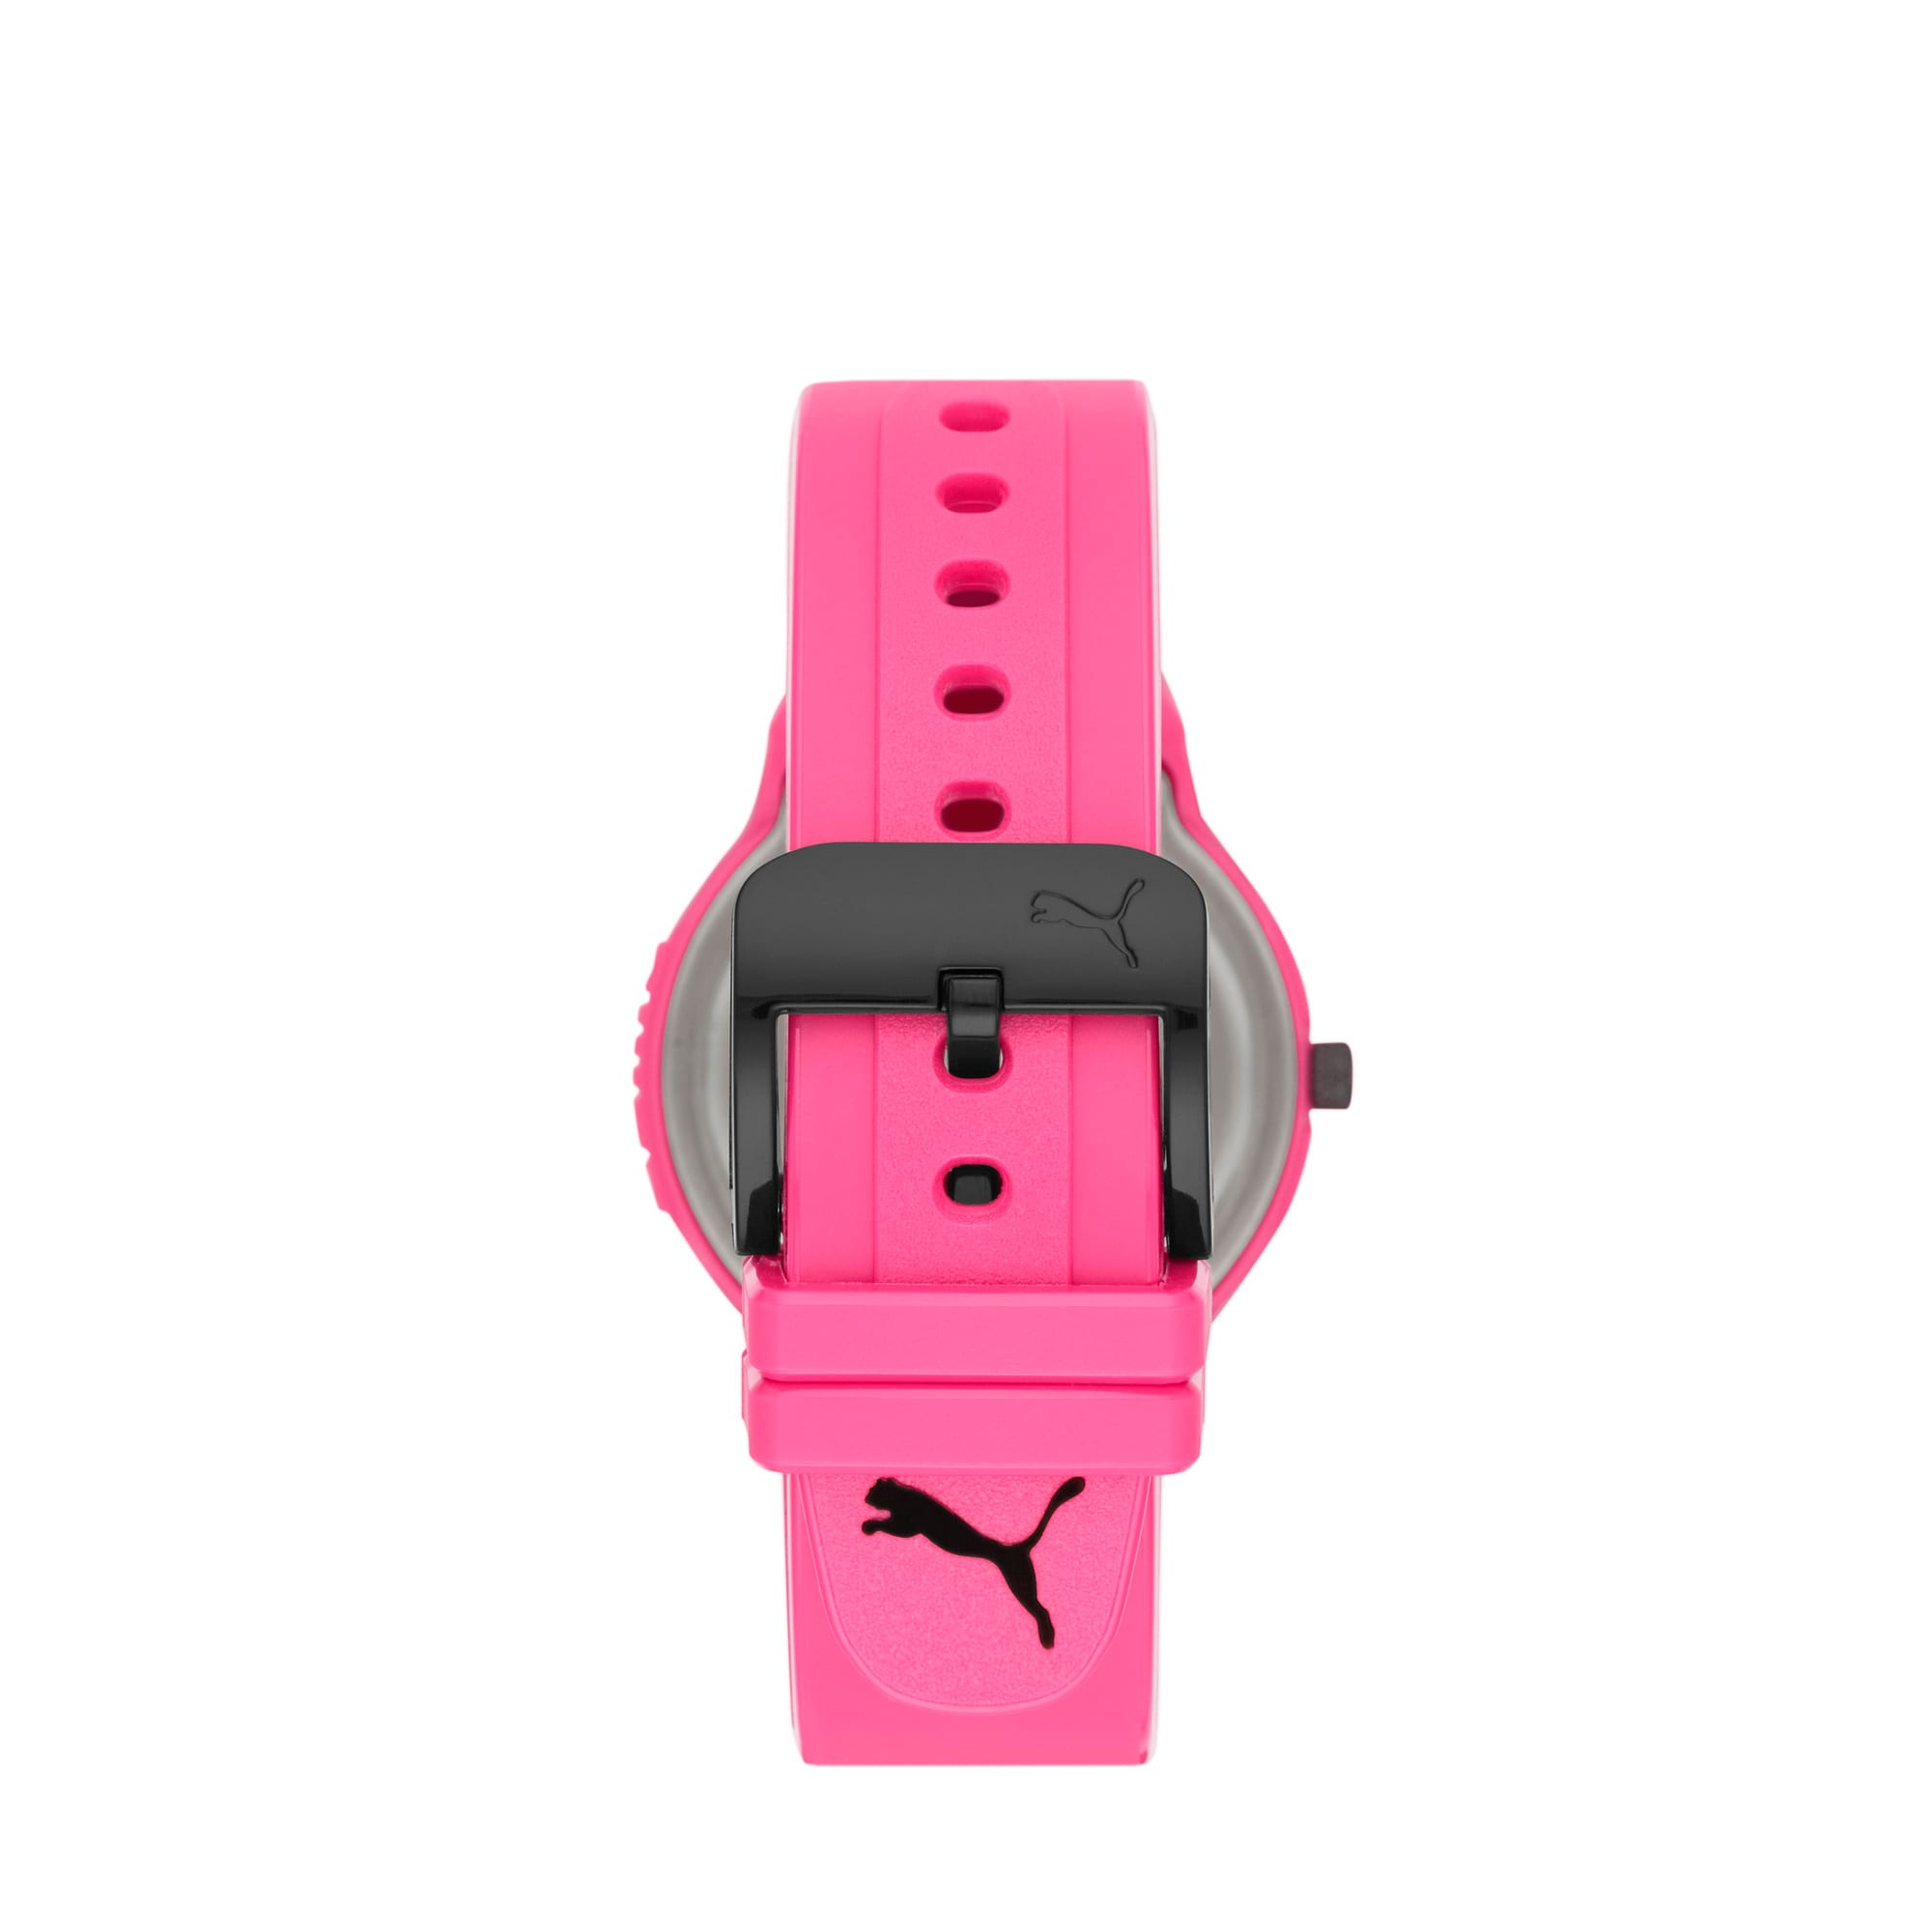 Reset v2 Watch, Pink/Pink, large